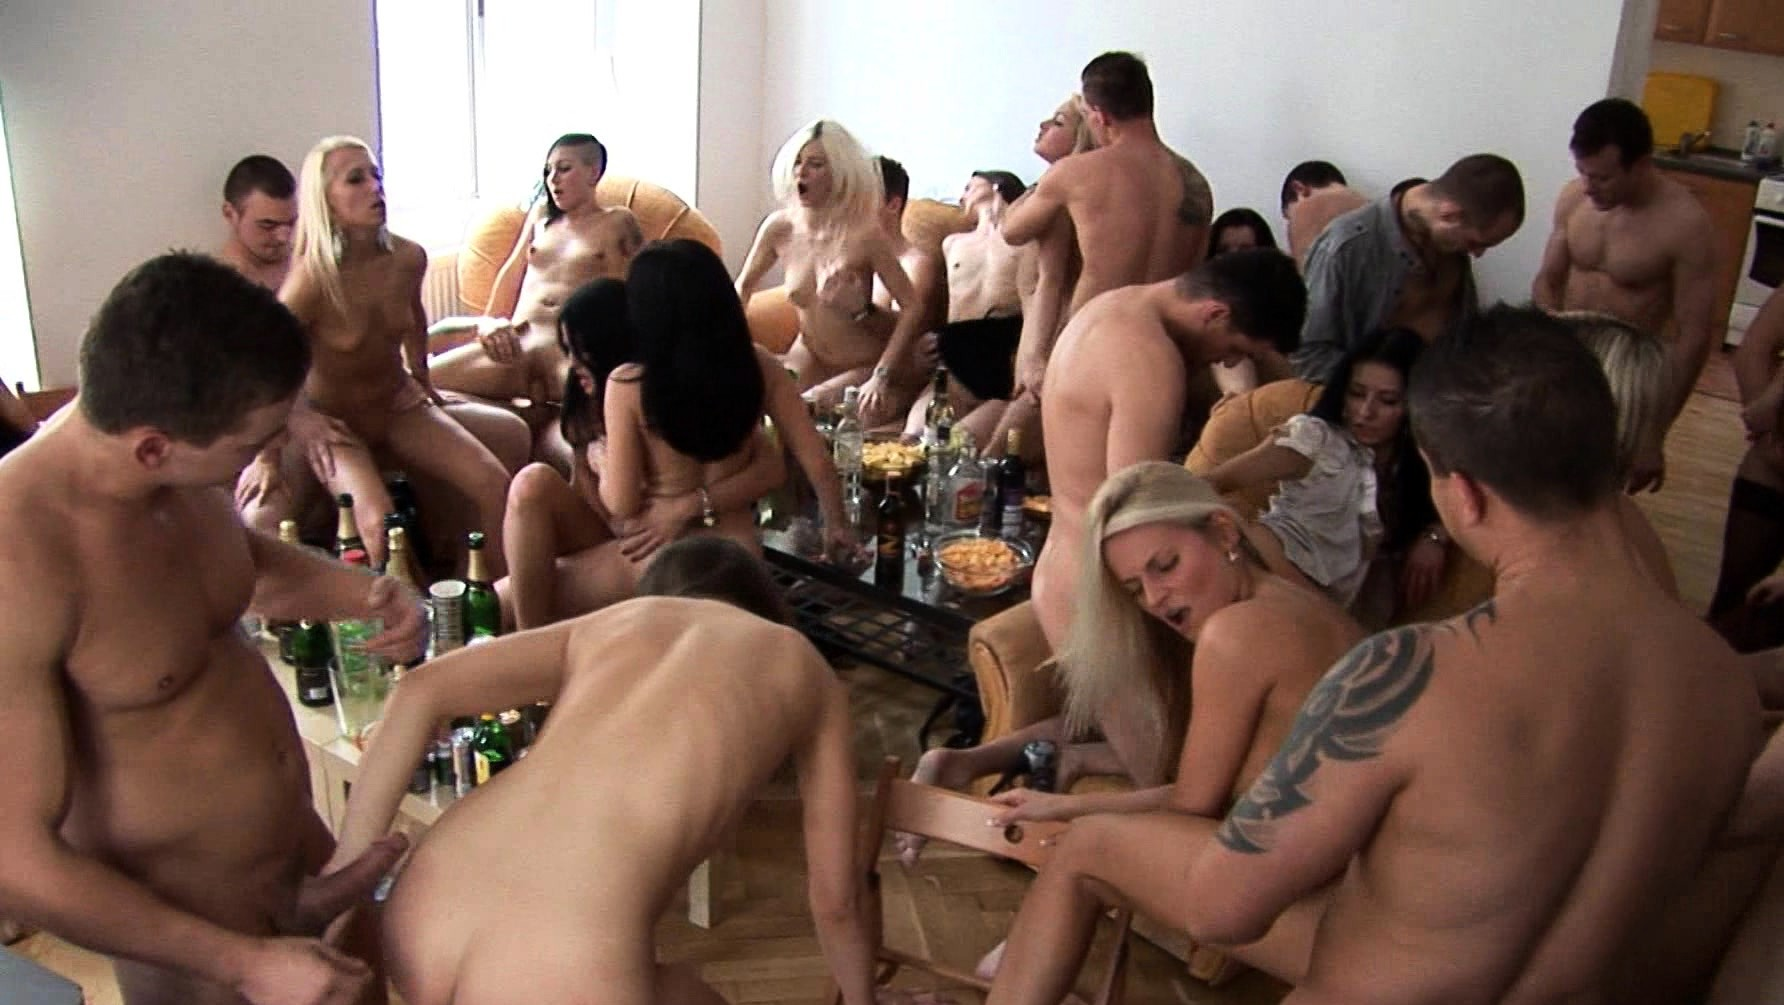 Beautiful Czech Girls Give Their Head At Home A Party